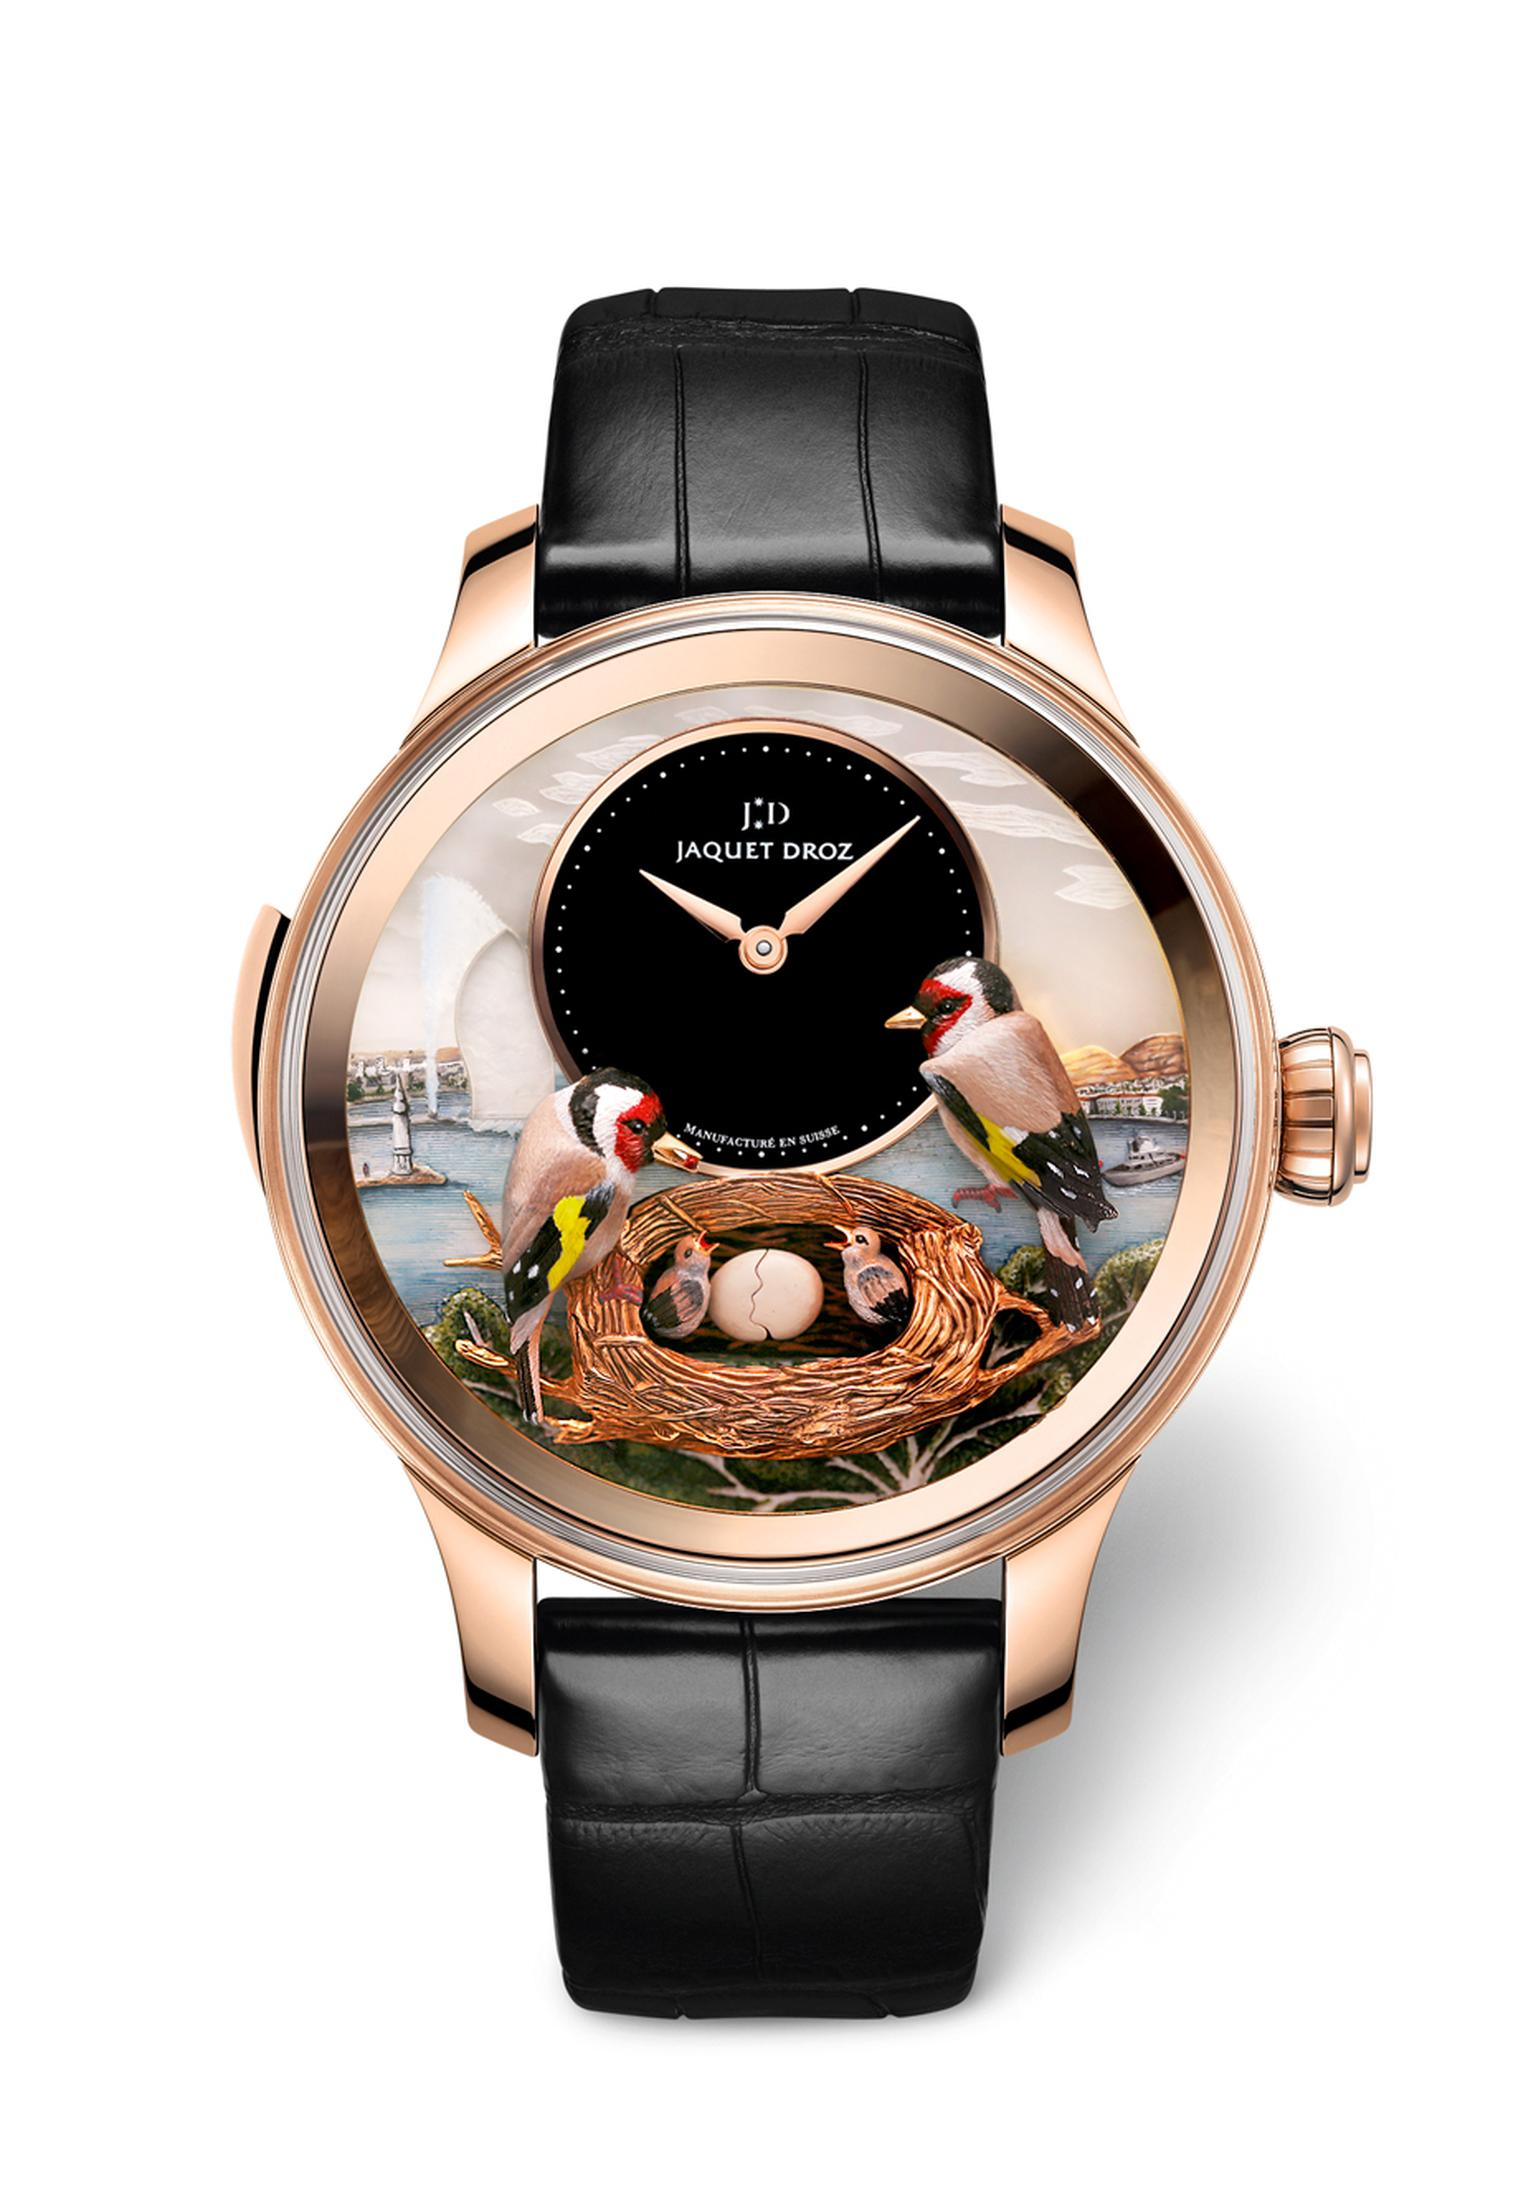 At the beginning of 2015, Jaquet Droz has launched the new Bird Repeater Geneva. An automaton watch with a minute repeater, the technical complexity of this piece is on a par with the artistry involved in the dial.